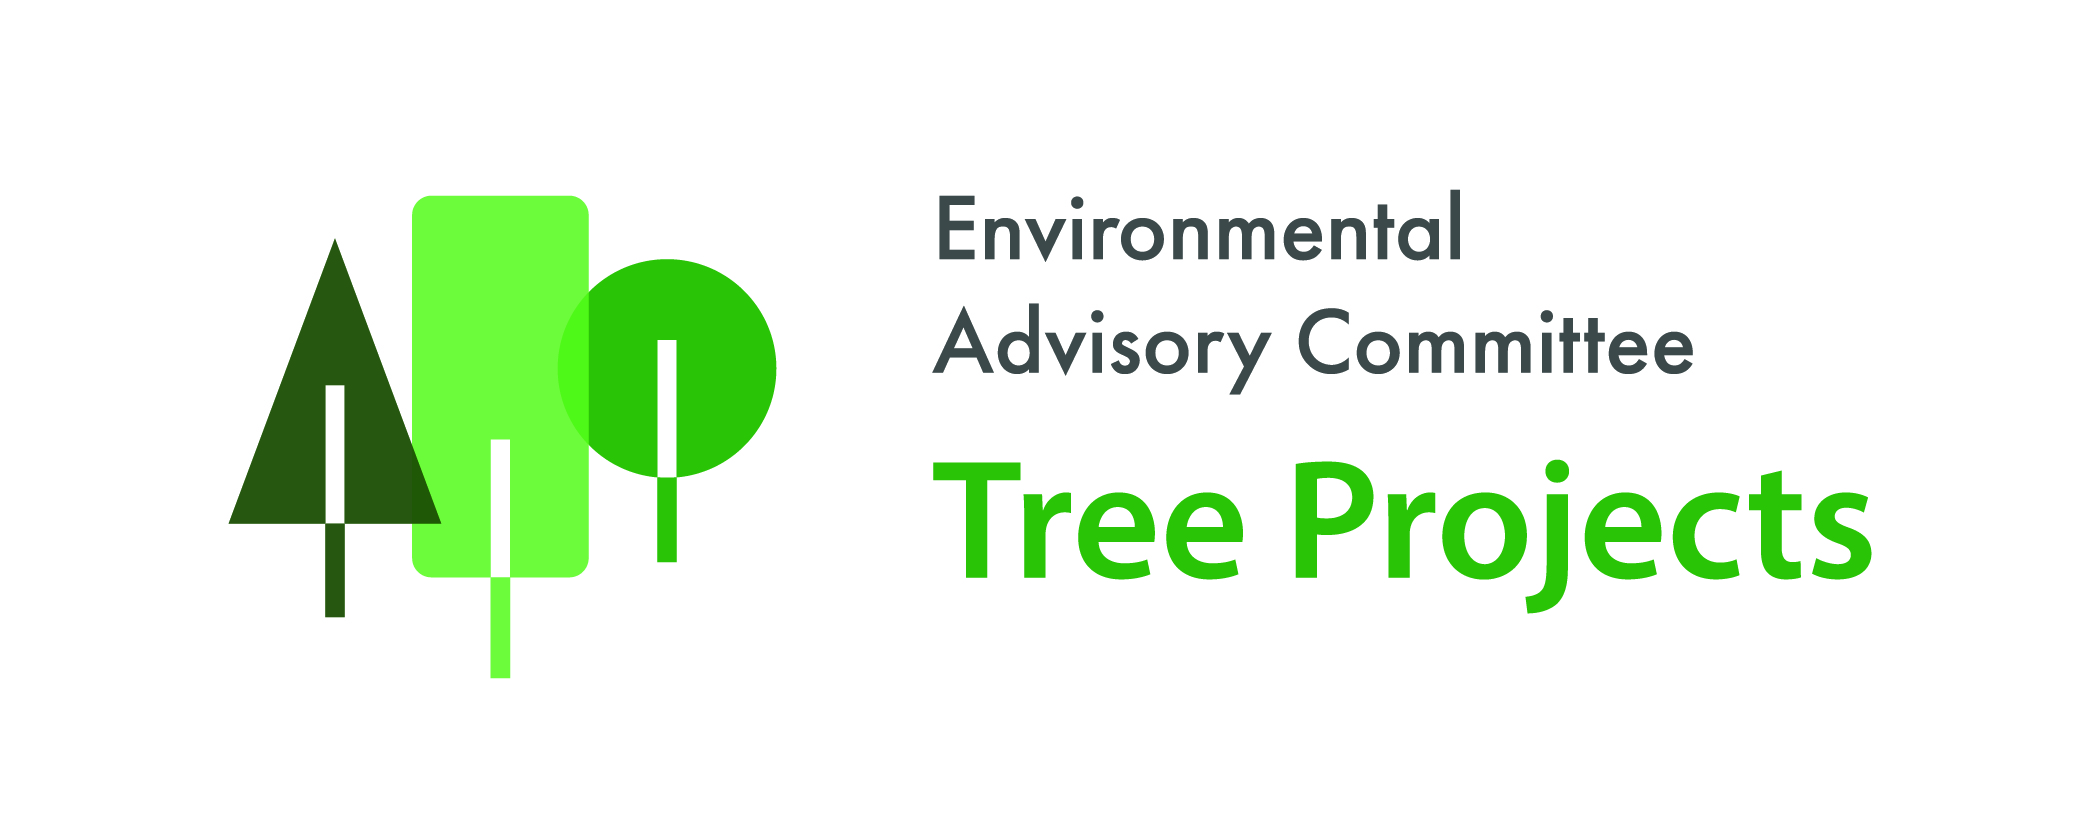 Environmental Advisory Committee Tree Projects Logo - Horizontal